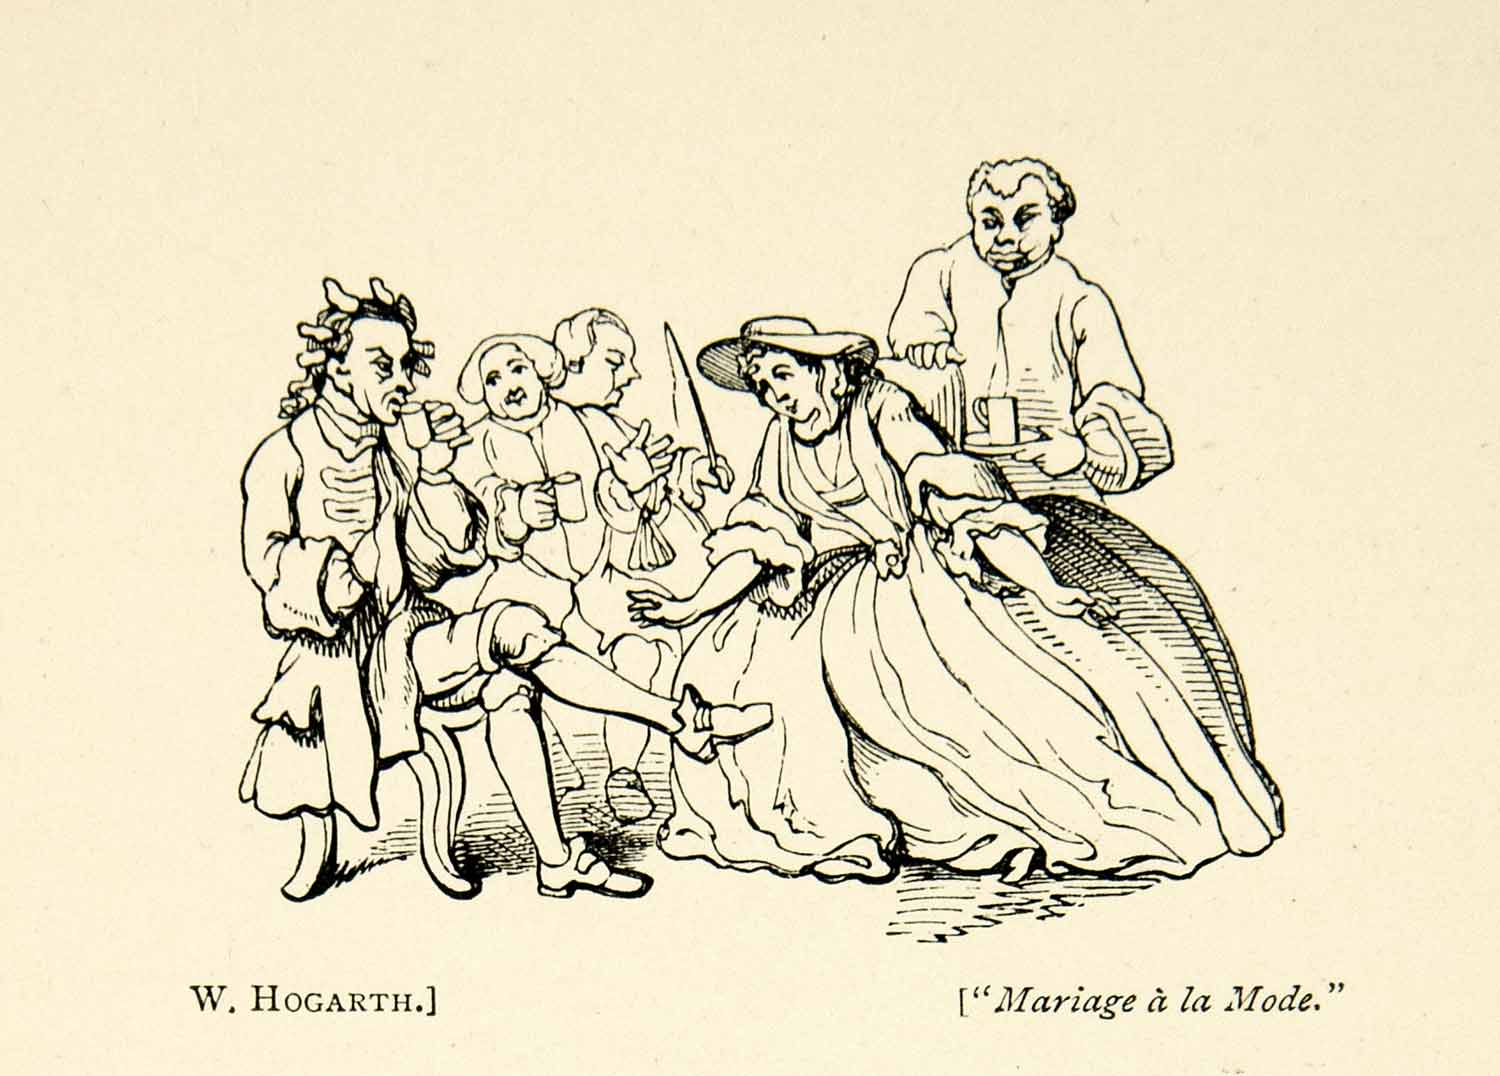 1893 Print William Hogarth Art Cartoon Marriage A La Mode Humorous Satire XDH8